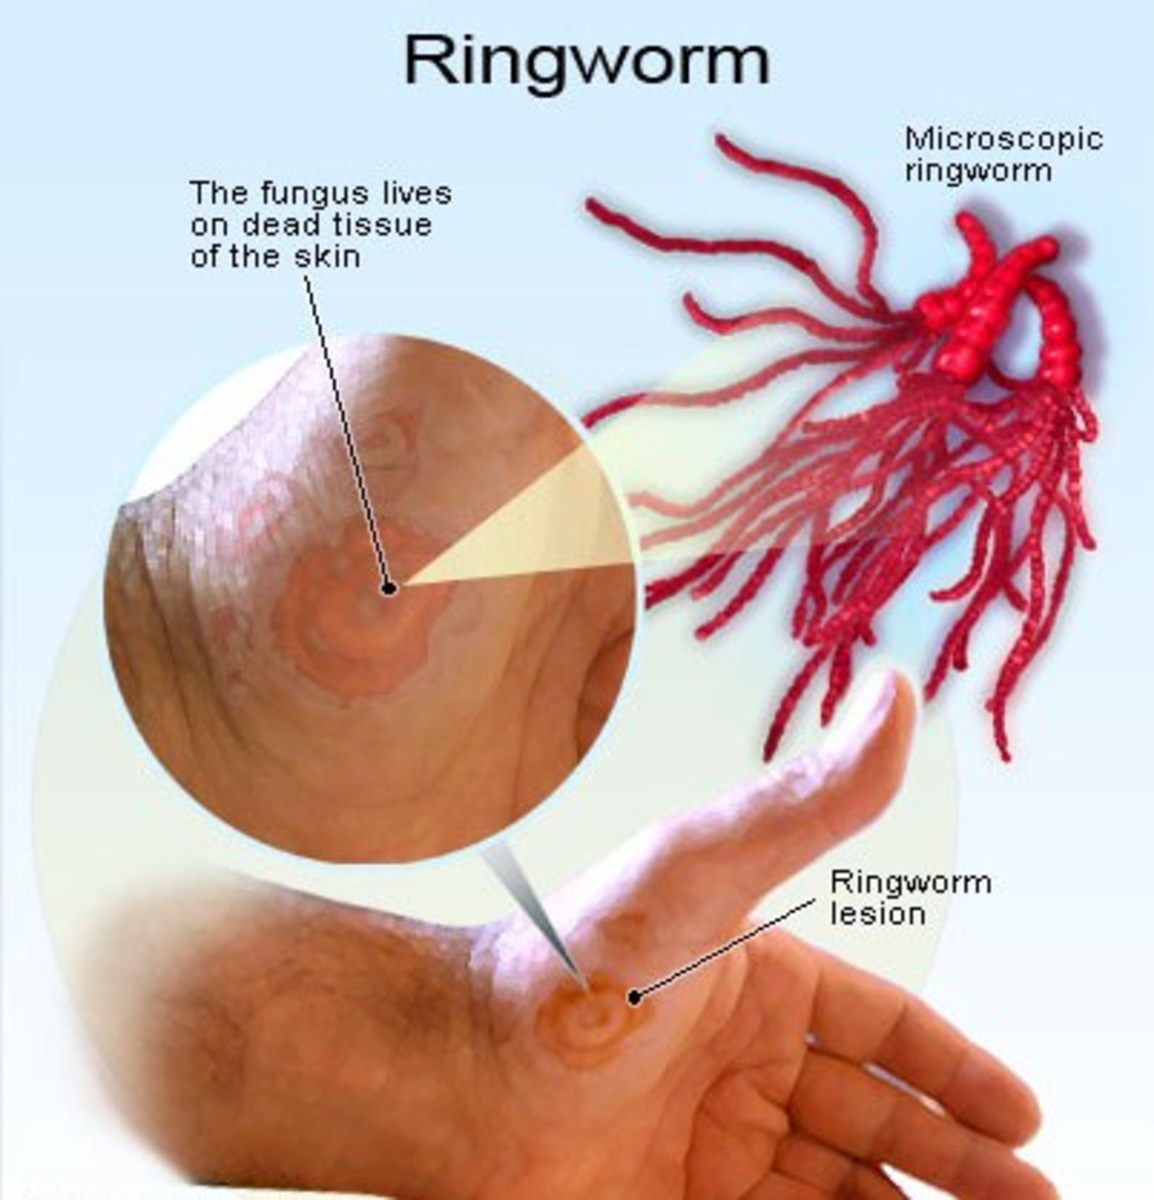 Ringworm is not a parasitic worm, it is a fungus that feeds on dead skin tissues.